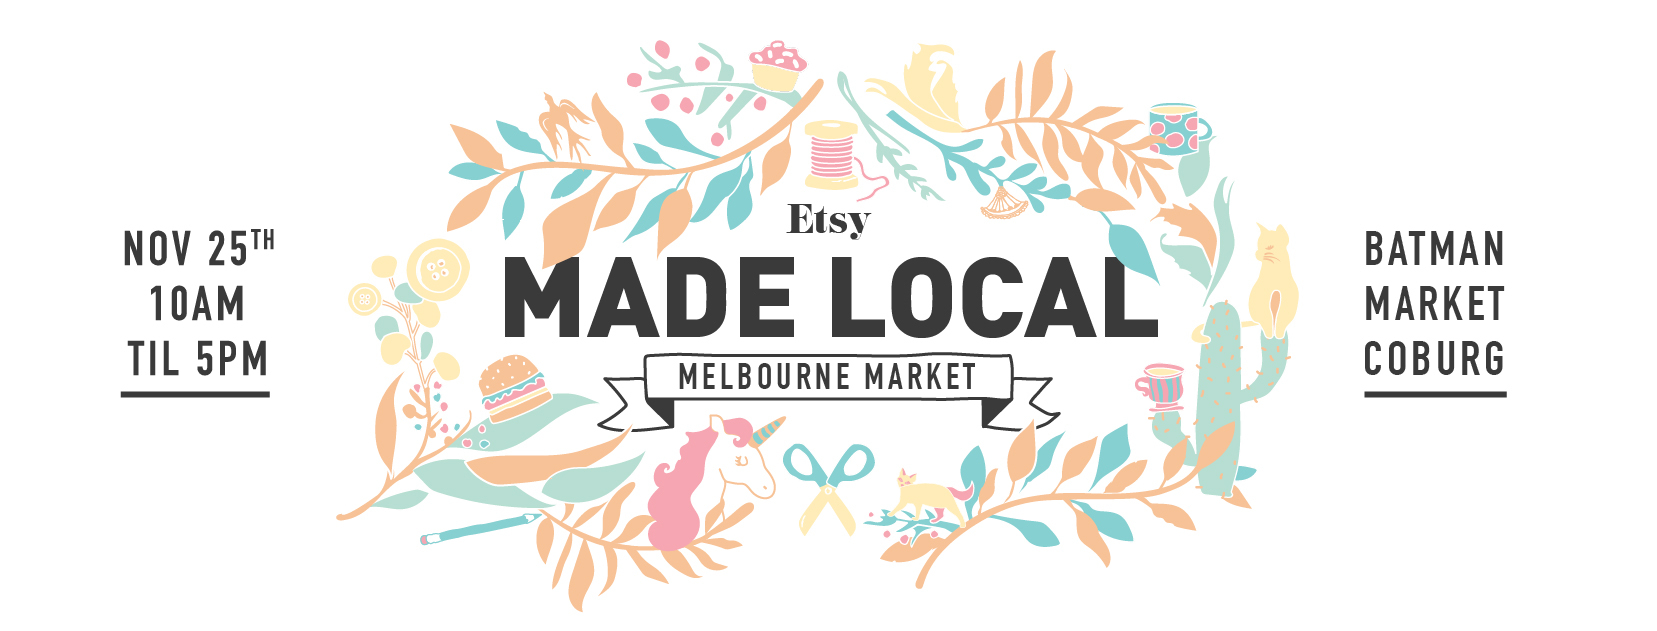 Etsy Made Local Melbourne Market